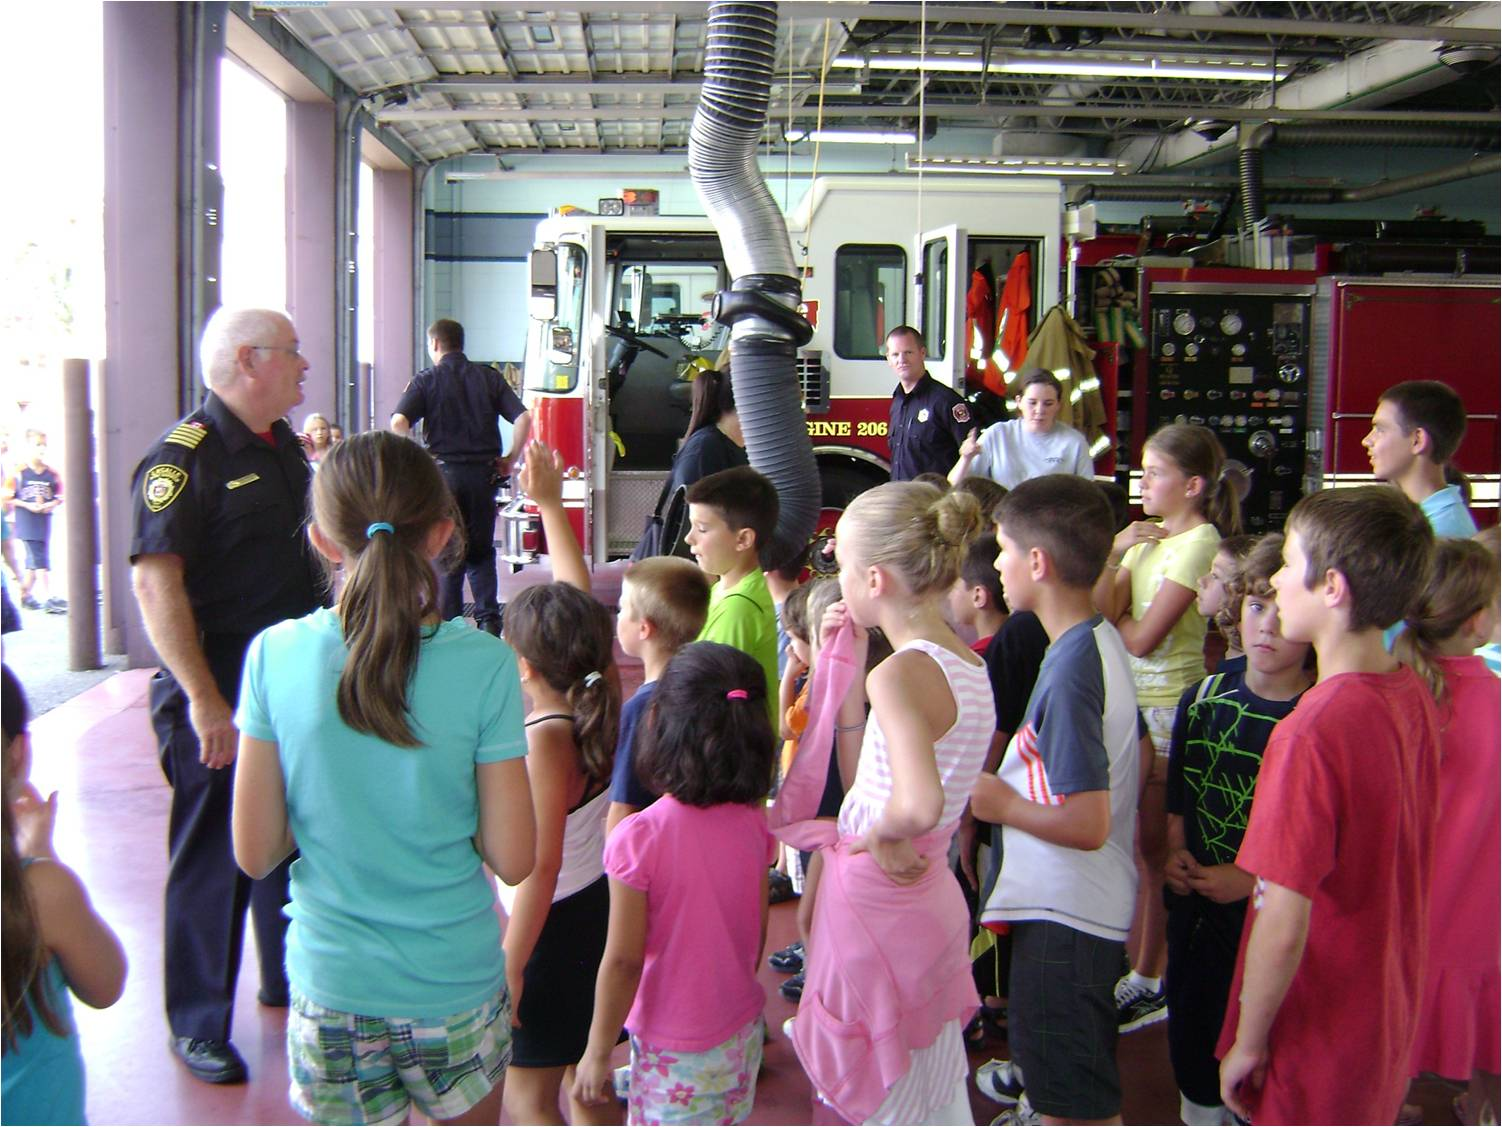 Chief Sutton giving a Fire Hall tour to school-aged children